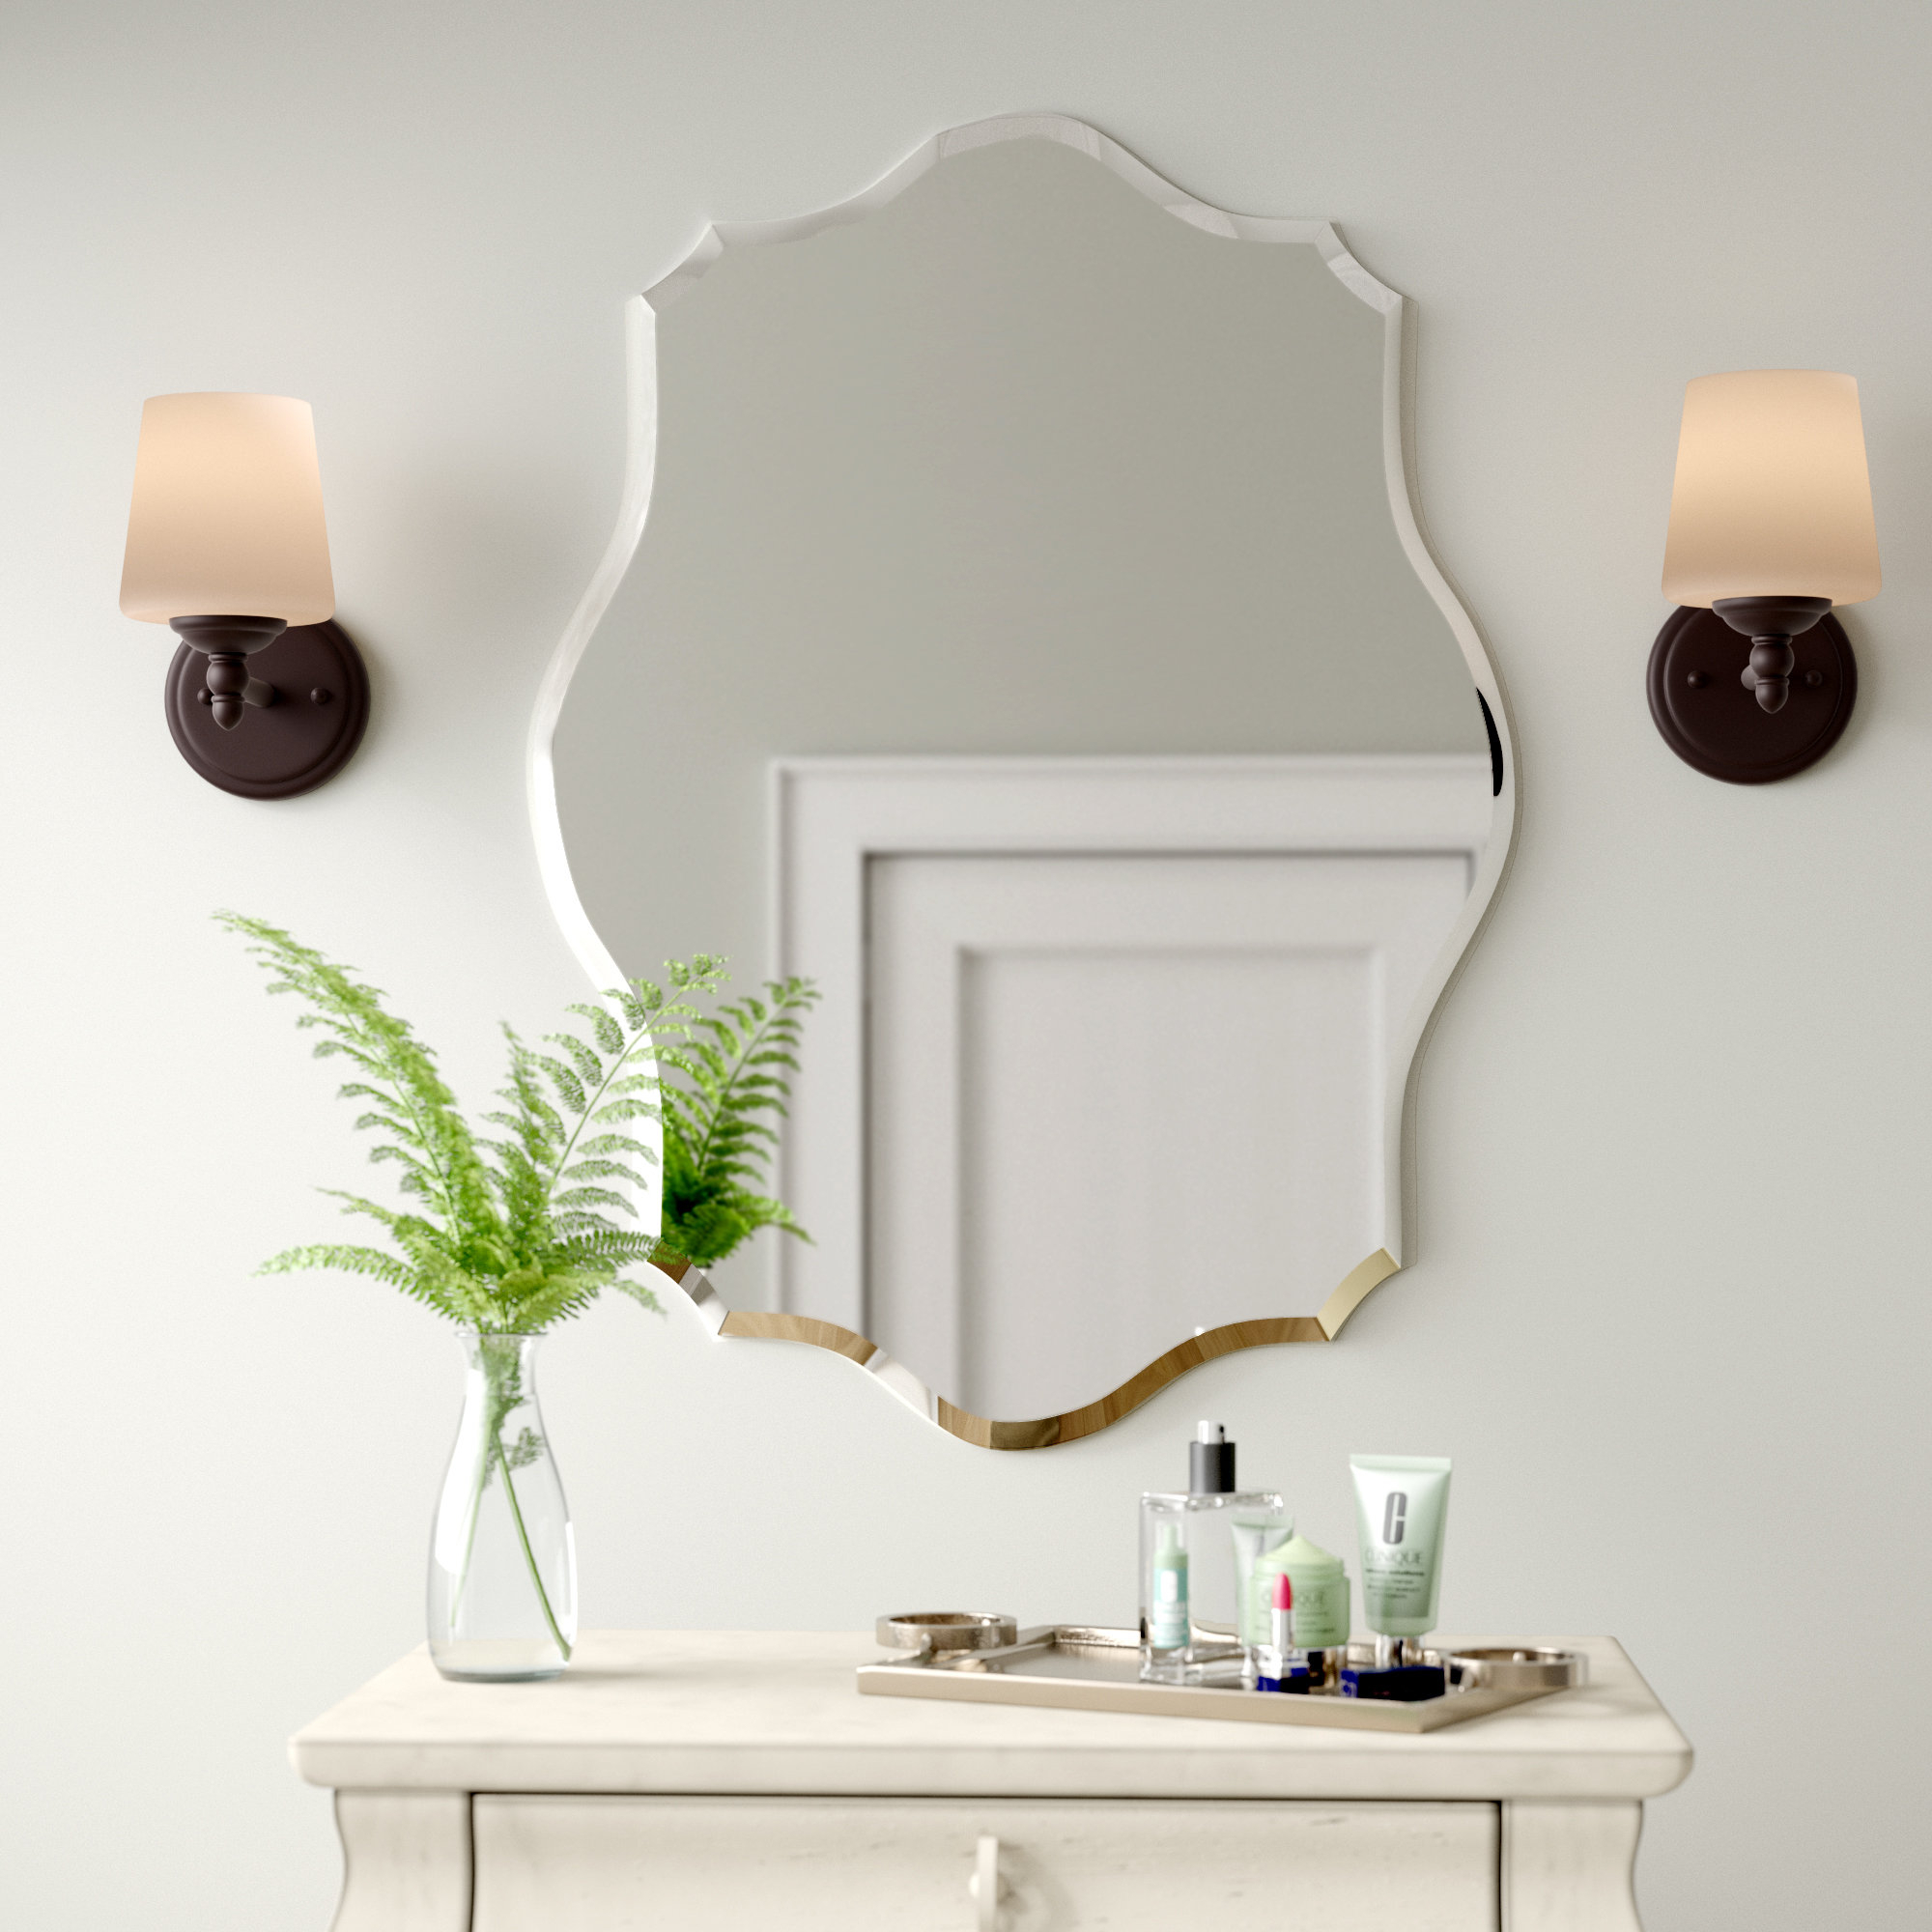 Birch Lane™ Heritage Guidinha Modern & Contemporary Accent Mirror Within Guidinha Modern & Contemporary Accent Mirrors (Image 2 of 20)